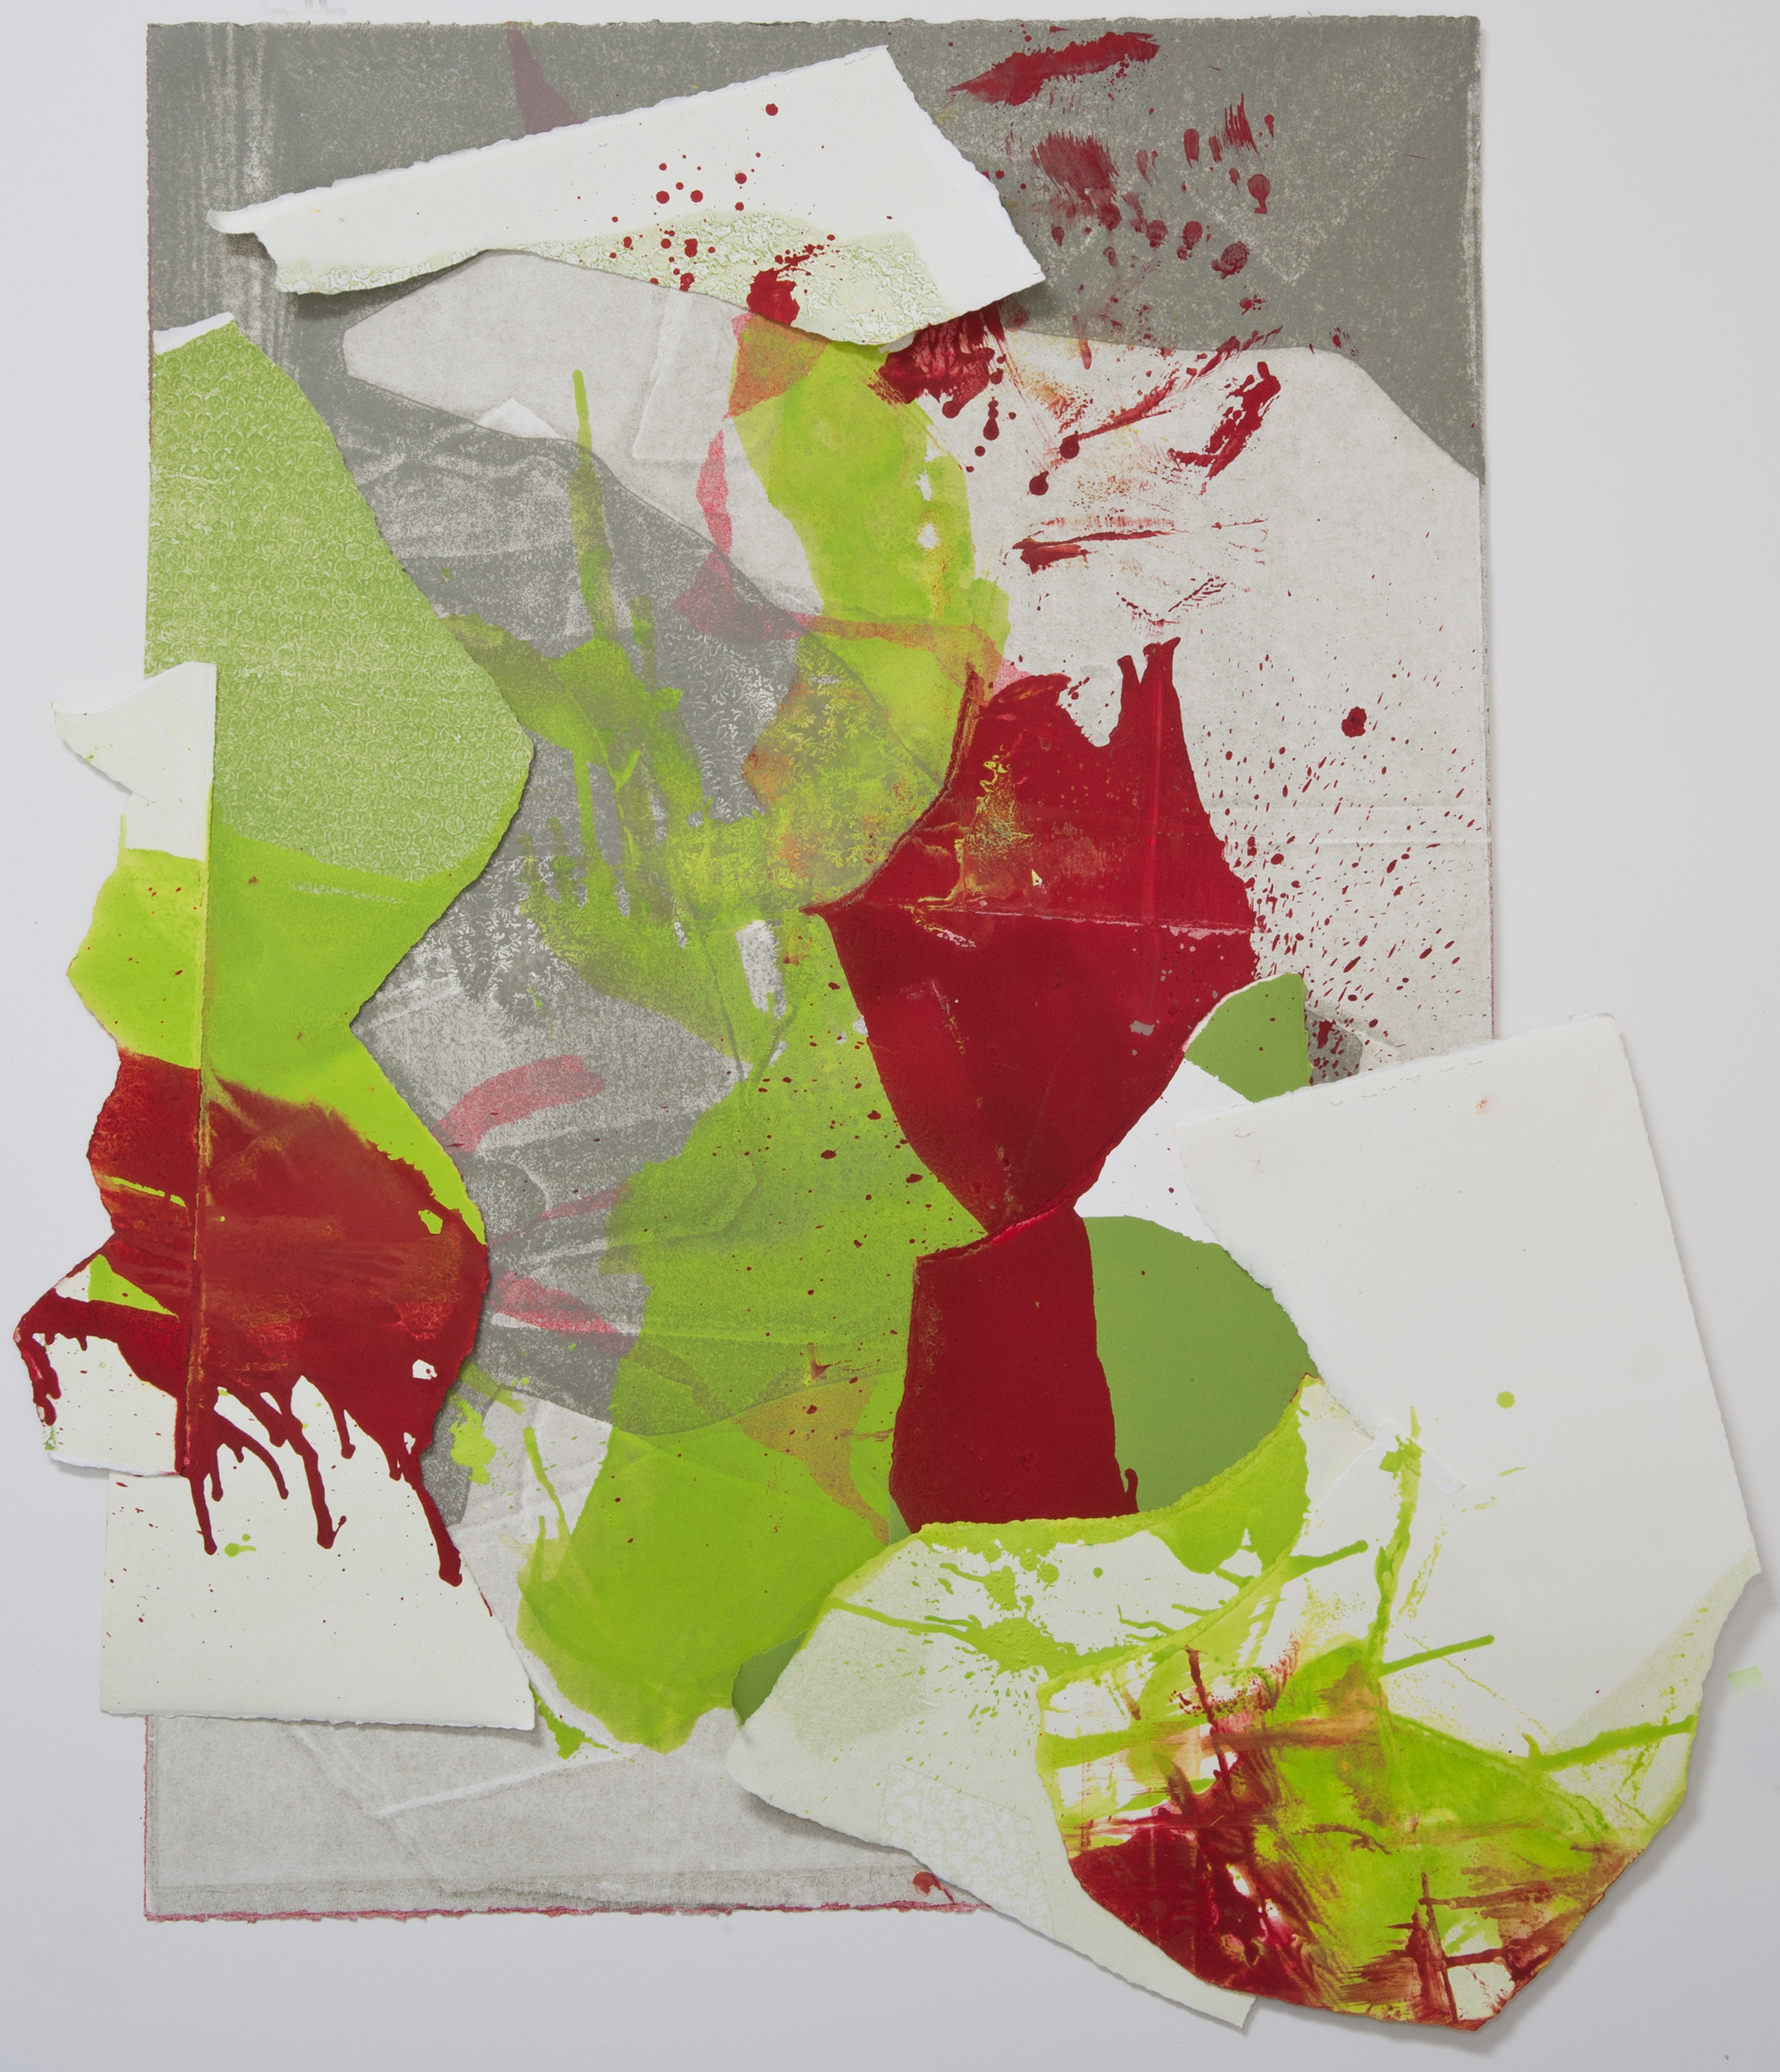 """Kay Harvey   """"About Ice Series 7"""" 2013. Collage, Oil on Paper. 46 x 39"""""""